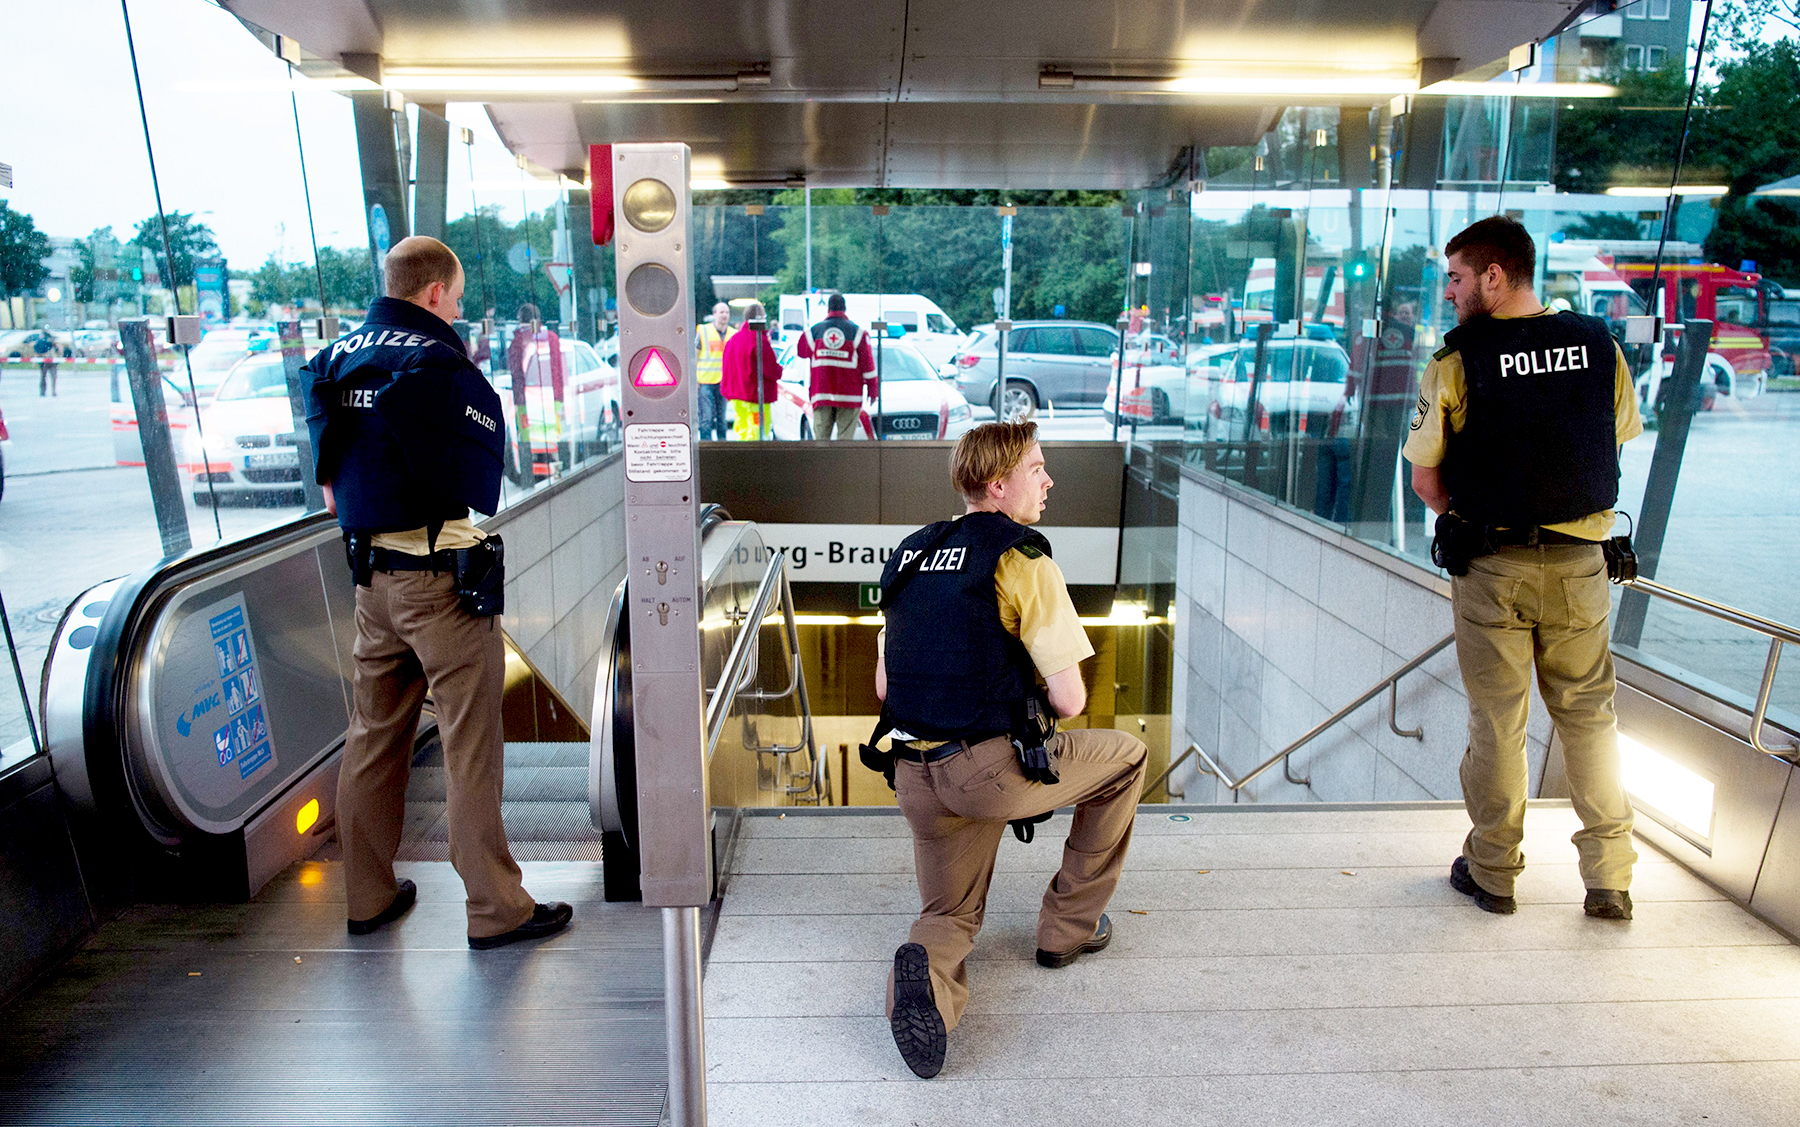 Police secures the entrance to a subway station near a shopping mall where a shooting took place on July 22, 2016 in Munich.